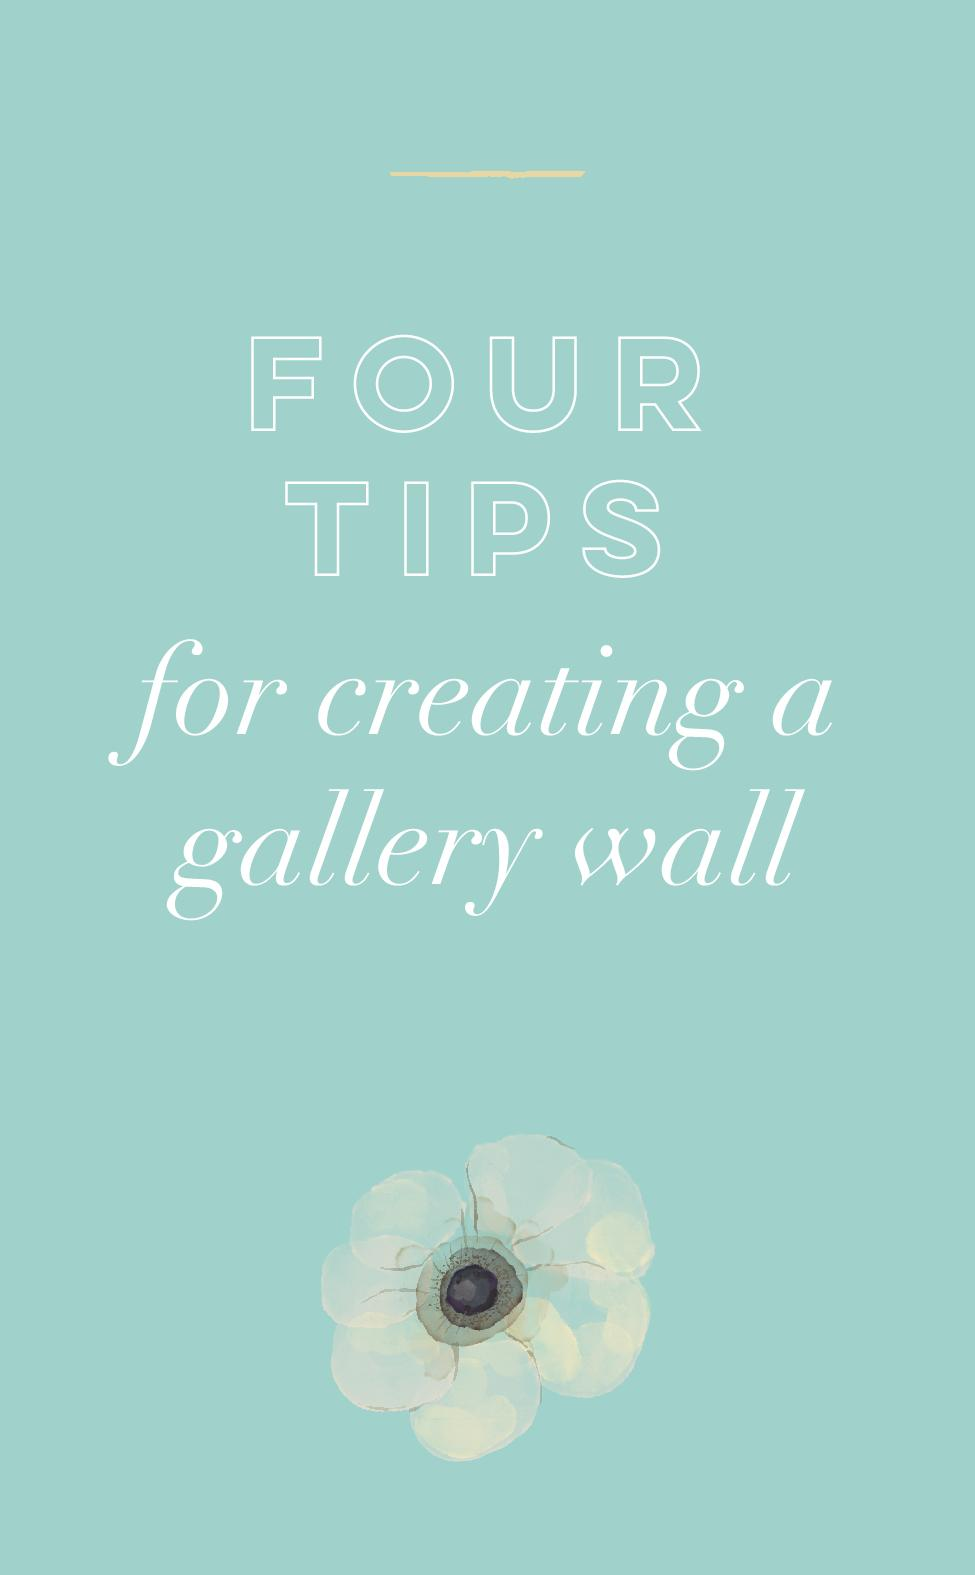 Four Tips for Creating A Gallery Wall.jpg